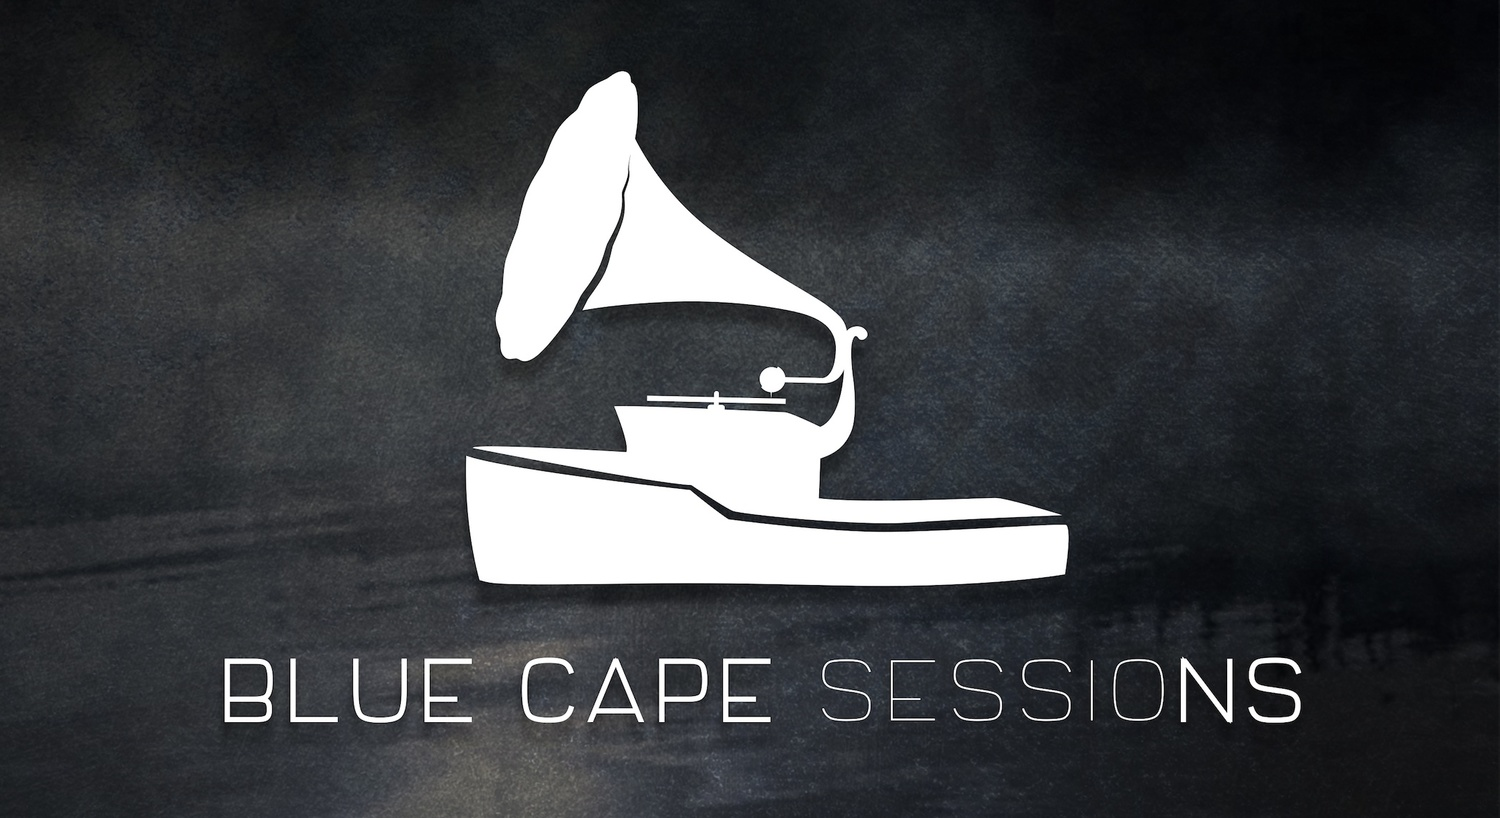 Blue Cape Sessions